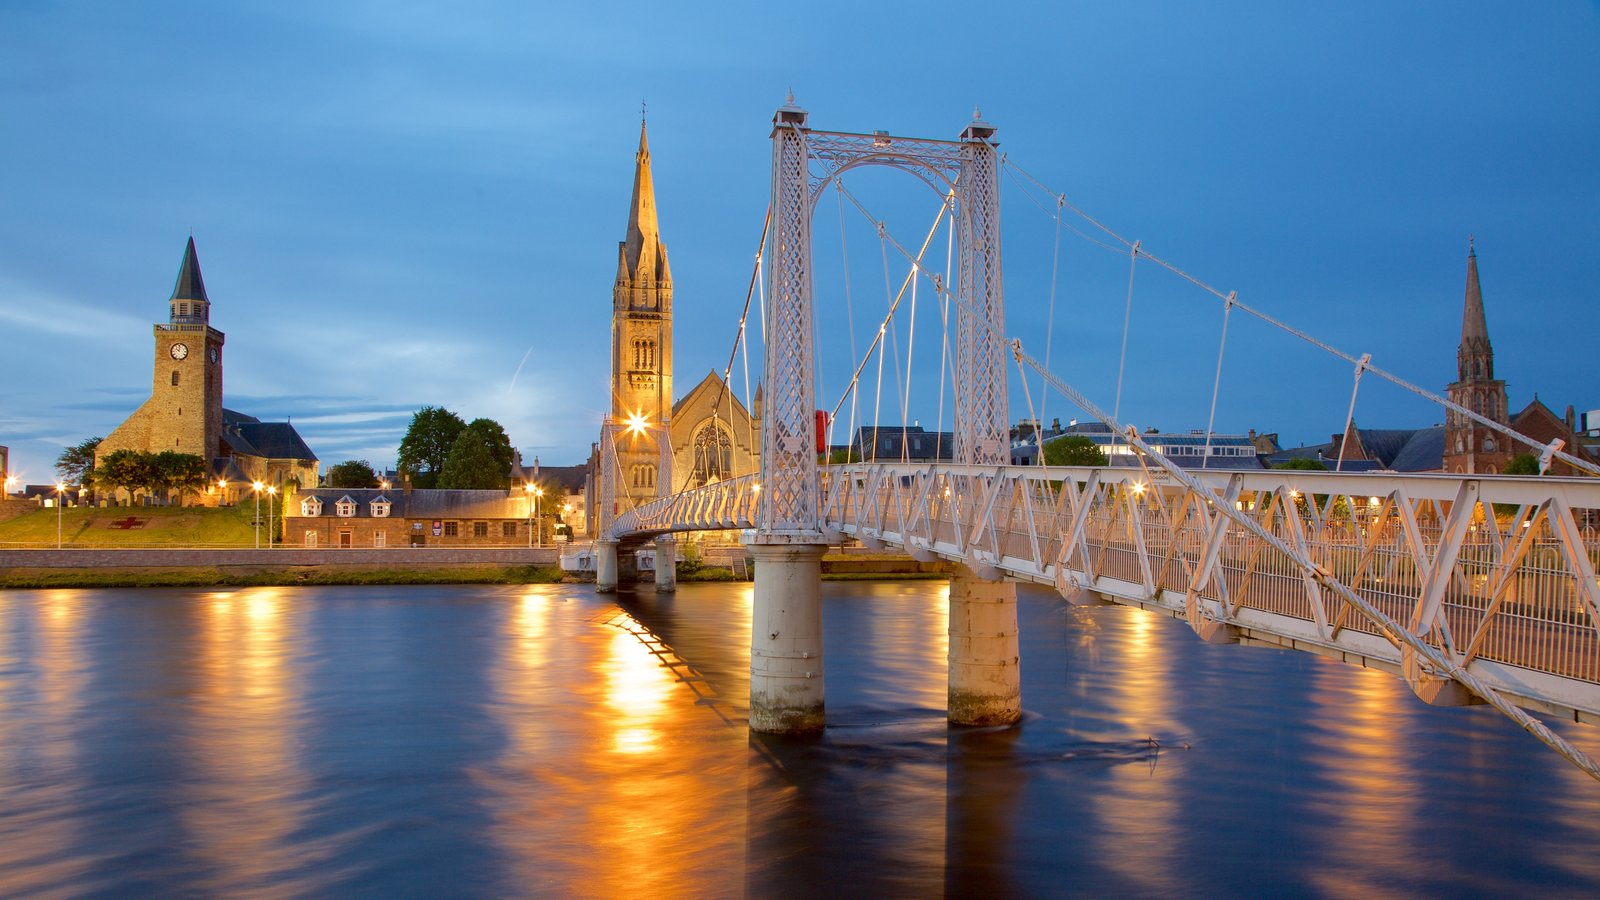 Inverness which includes a river or creek, heritage architecture and heritage elements